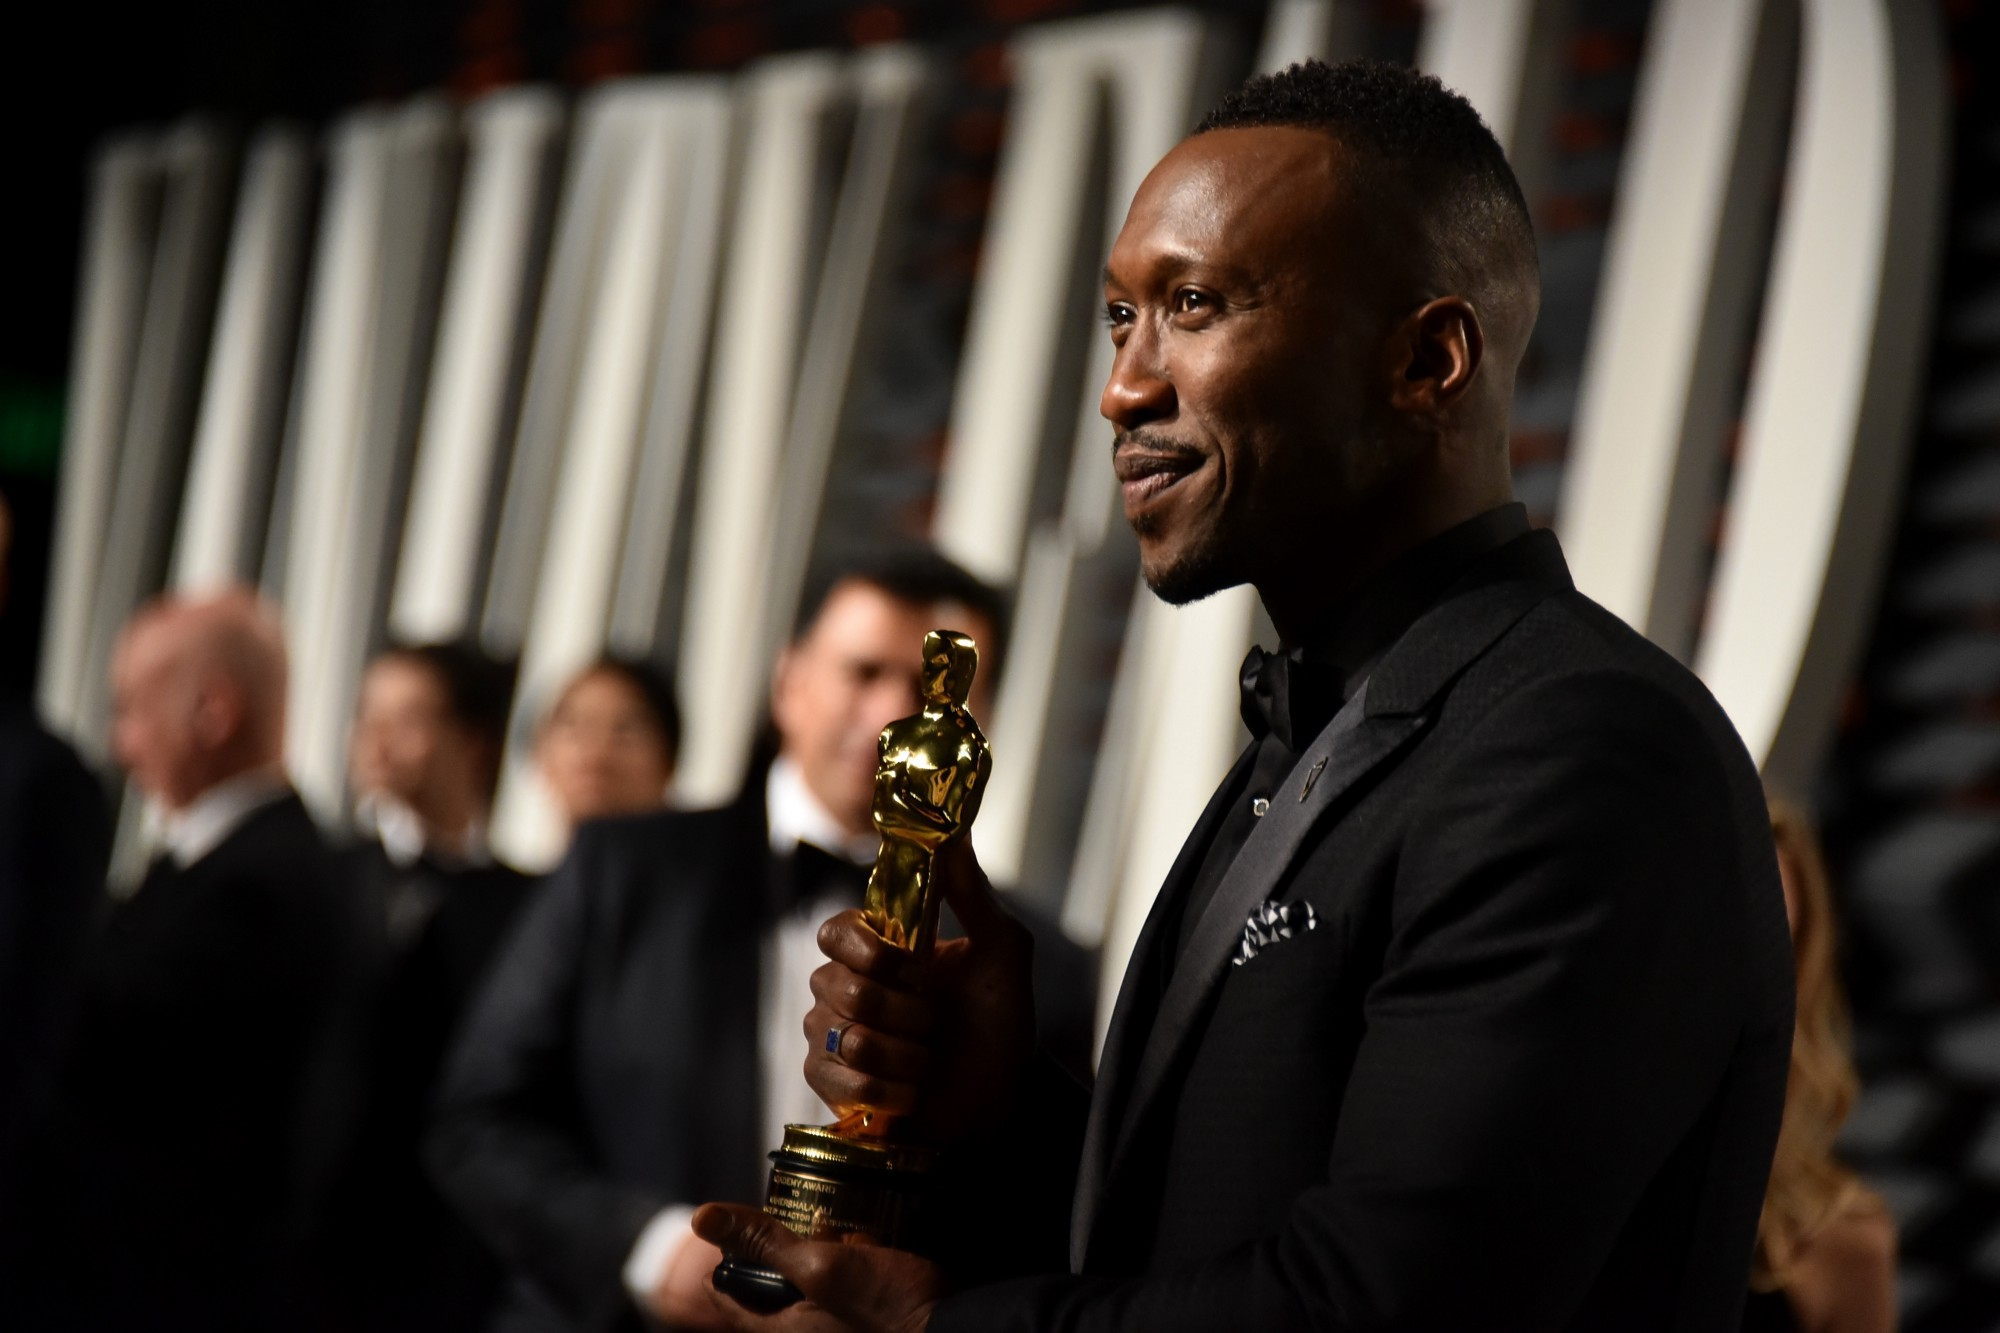 Oscar Winner Mahershala Ali Confirmed to Star in True Detective Season 3